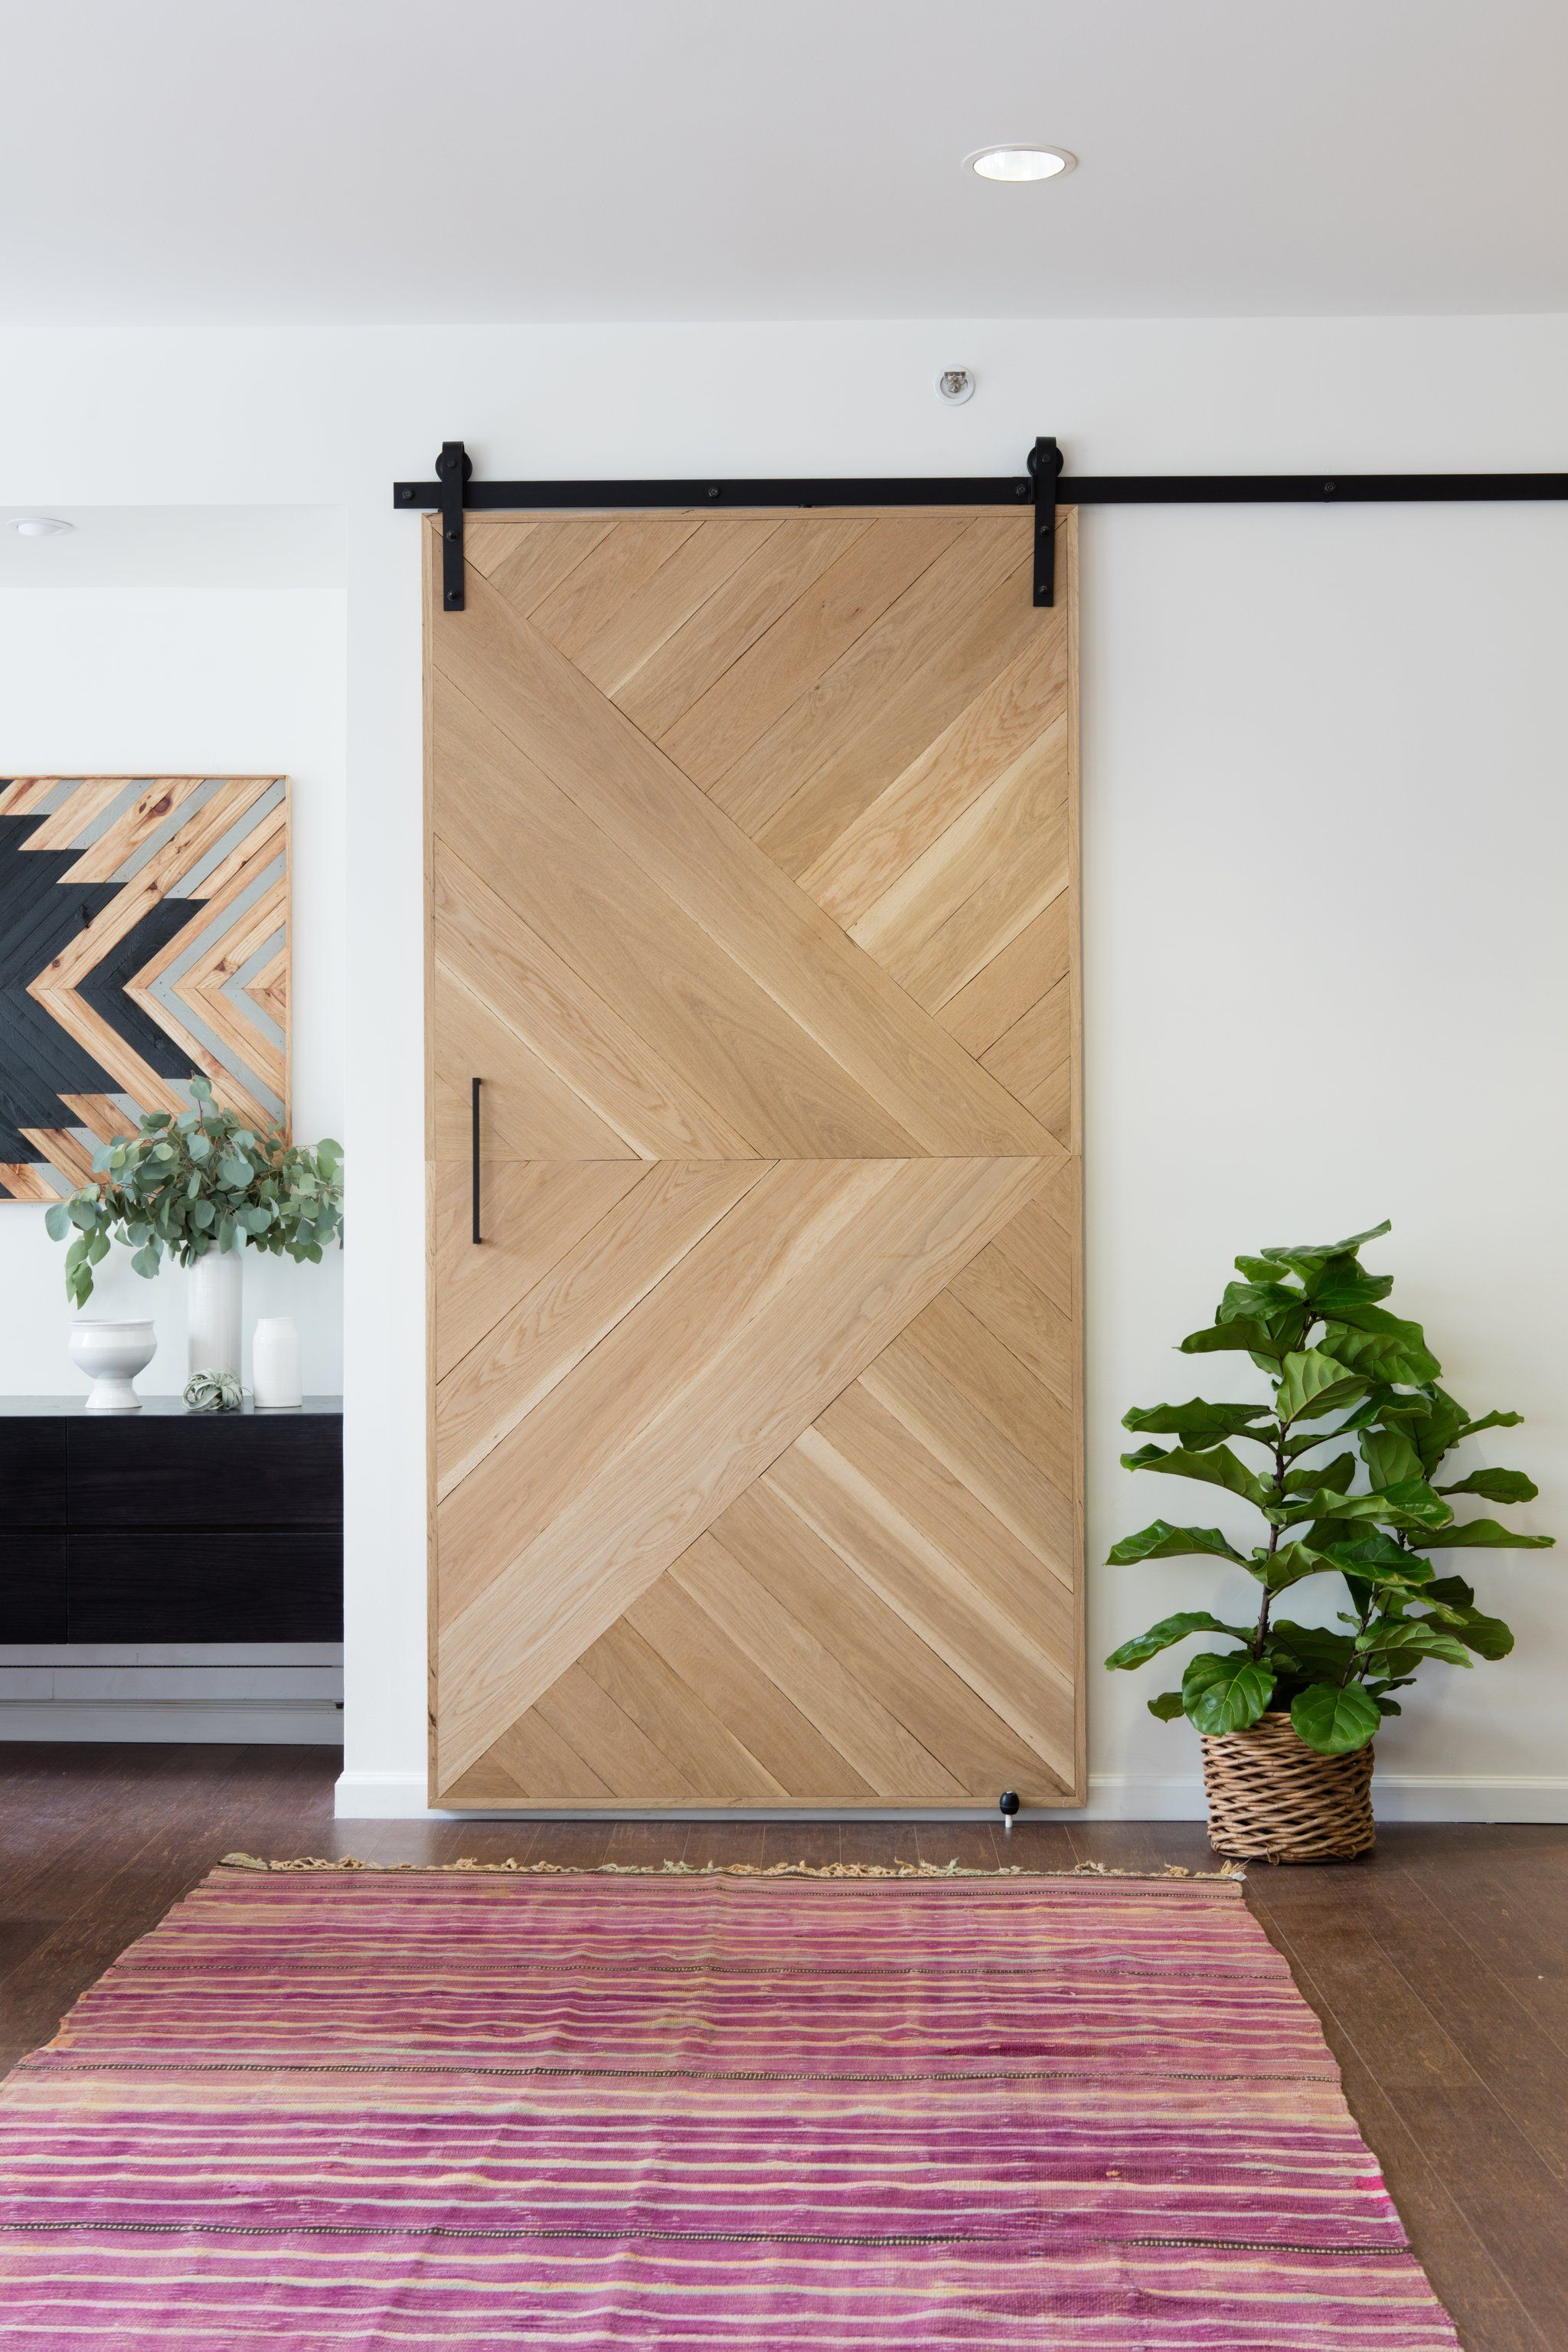 panel indoor door ideas wood next metal and doors with to white sliding awesome diagonal working barn espresso wooden room rod steel accents space dining interior